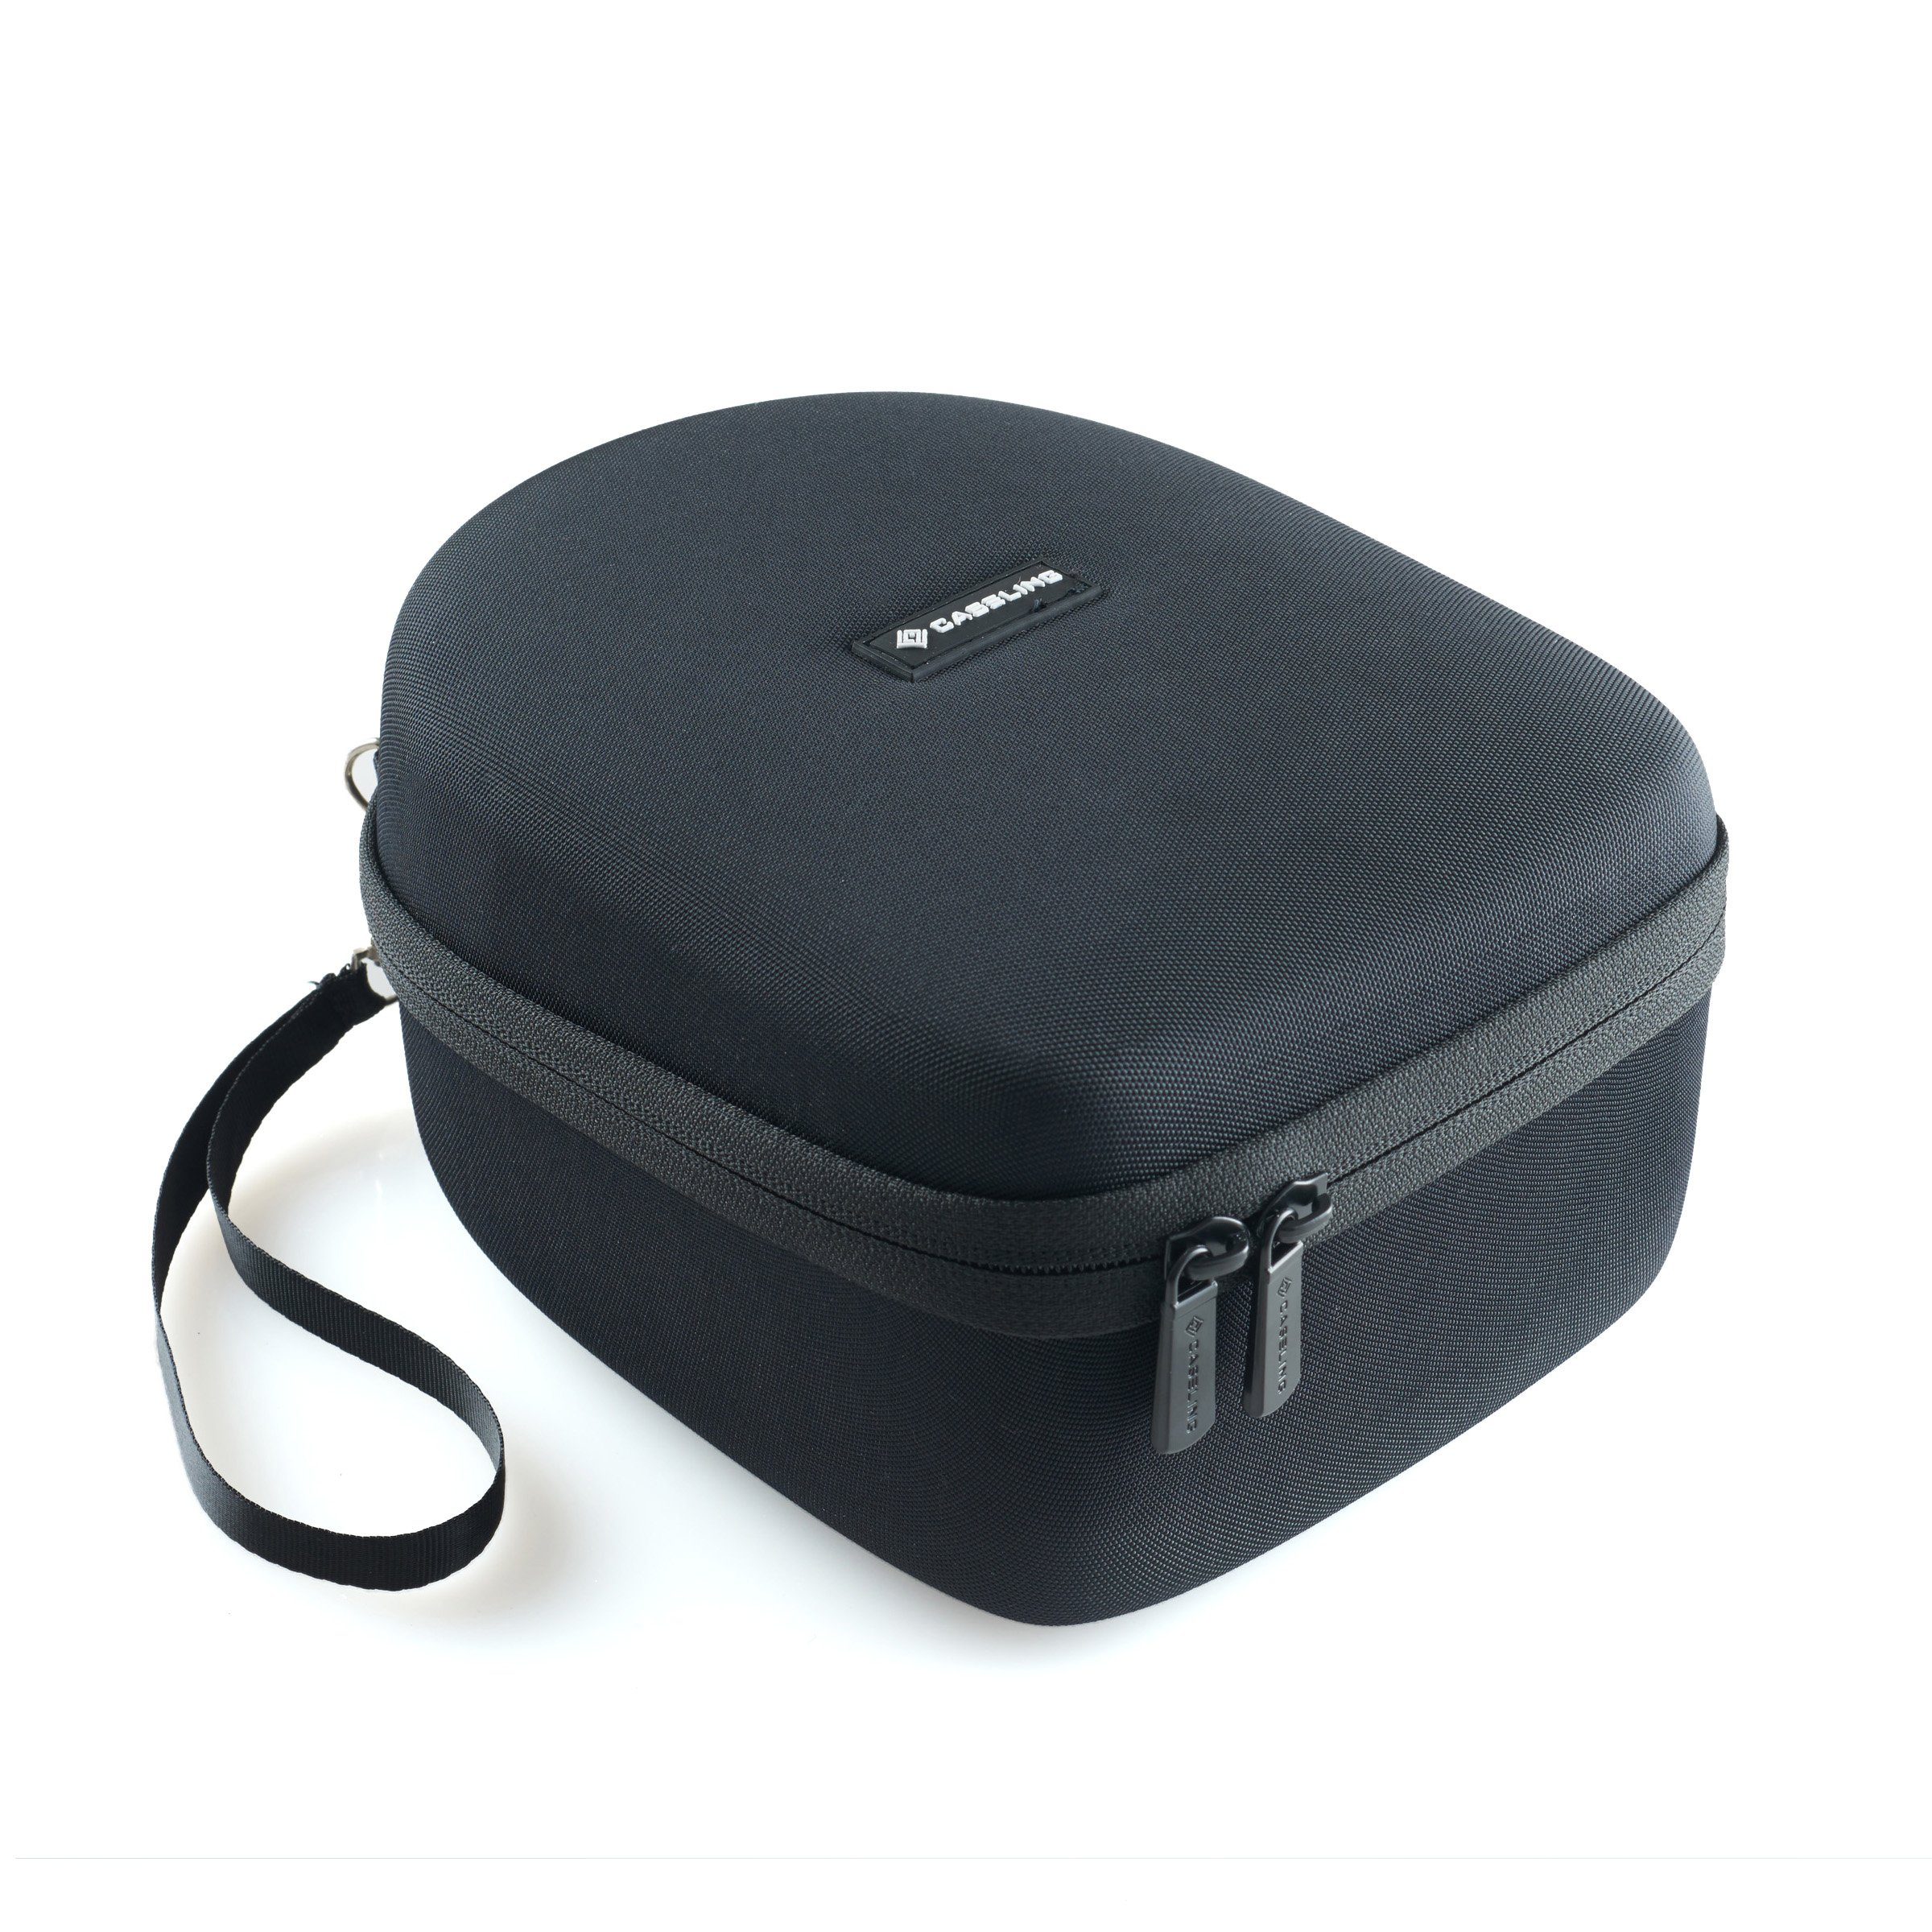 caseling Hard Case Fits Howard Leight by Honeywell Impact Pro Sound Amplification Electronic Shooting Earmuff (R-01902) - Includes Mesh Pocket for Accessories. by caseling